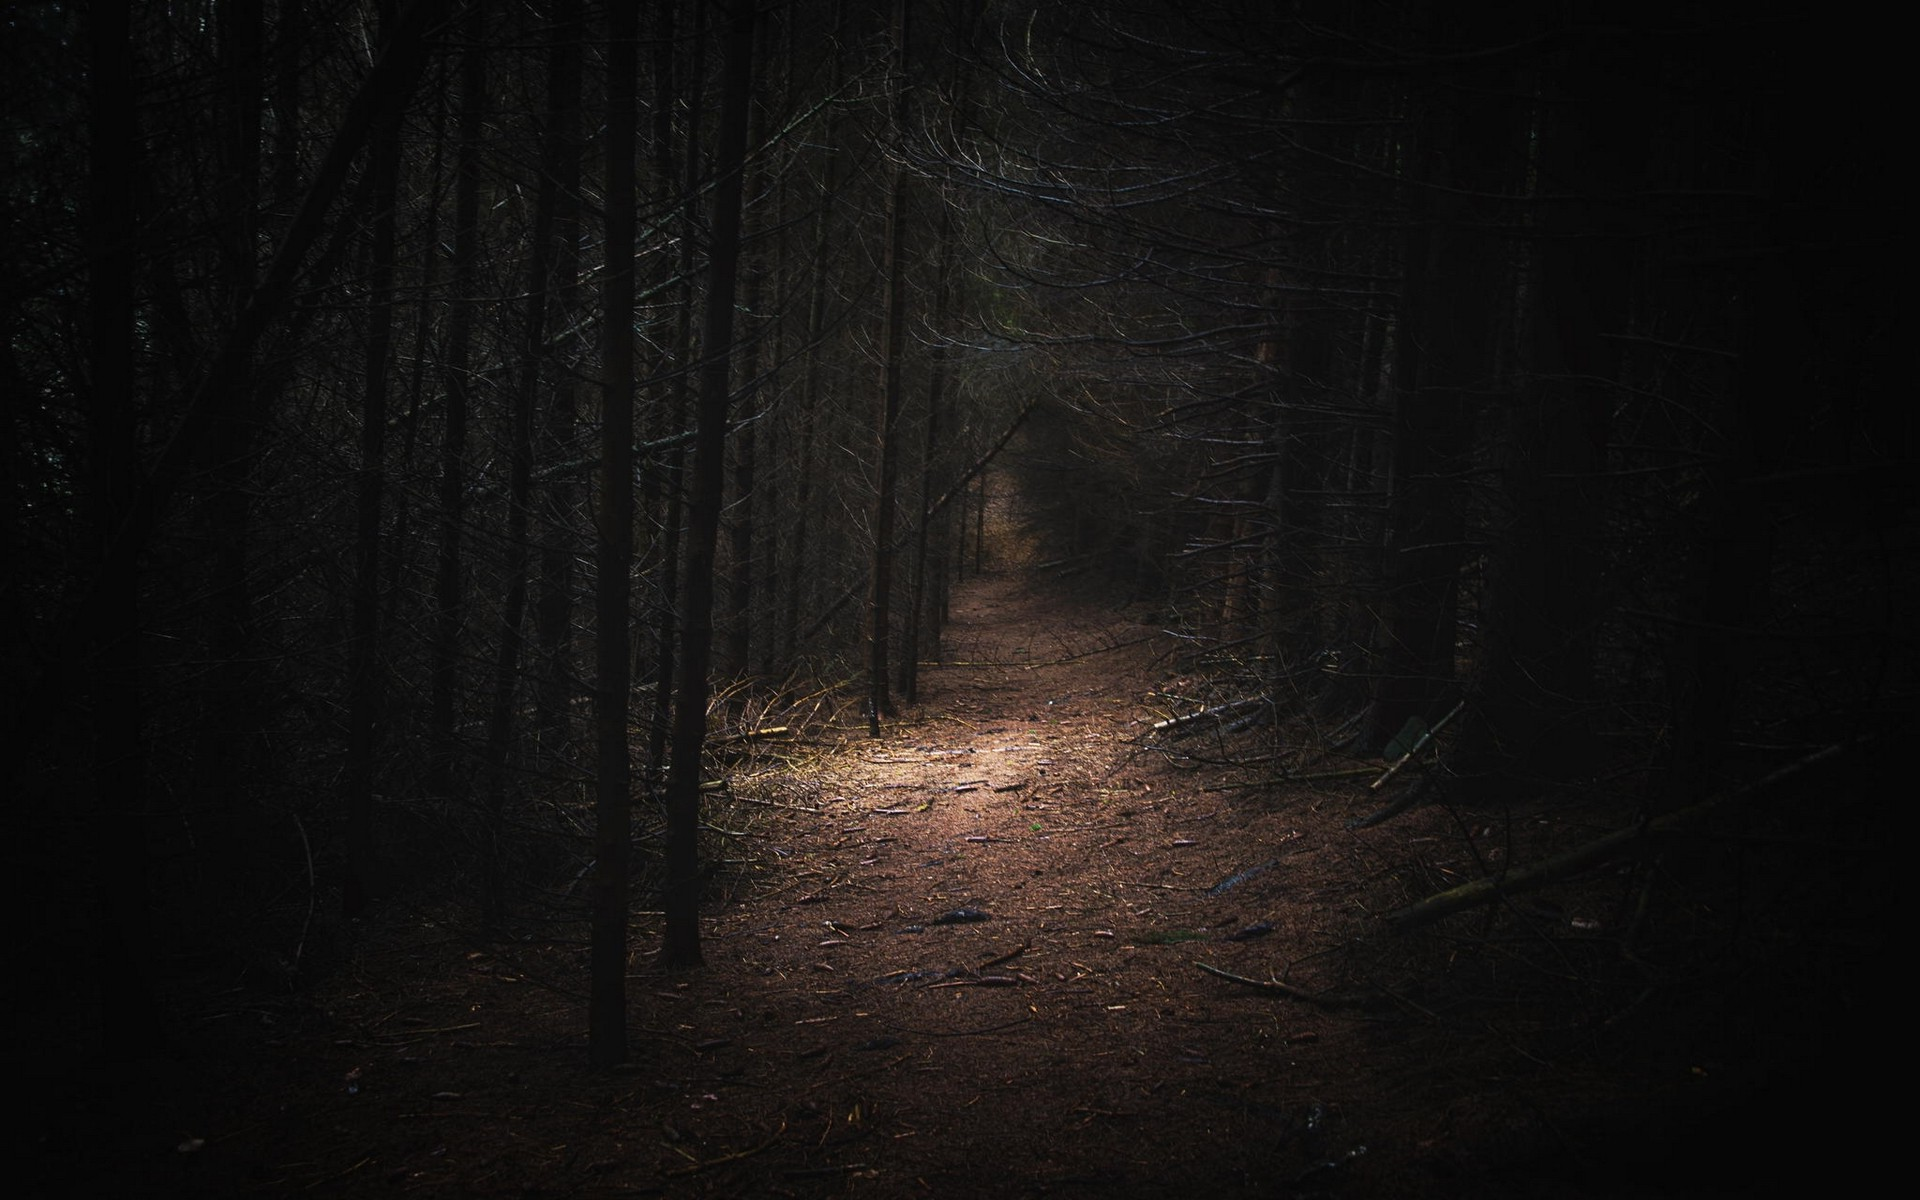 Wampire Moon Wallpaper Desktop 3d Nature Landscape Dark Forest Germany Path Daylight